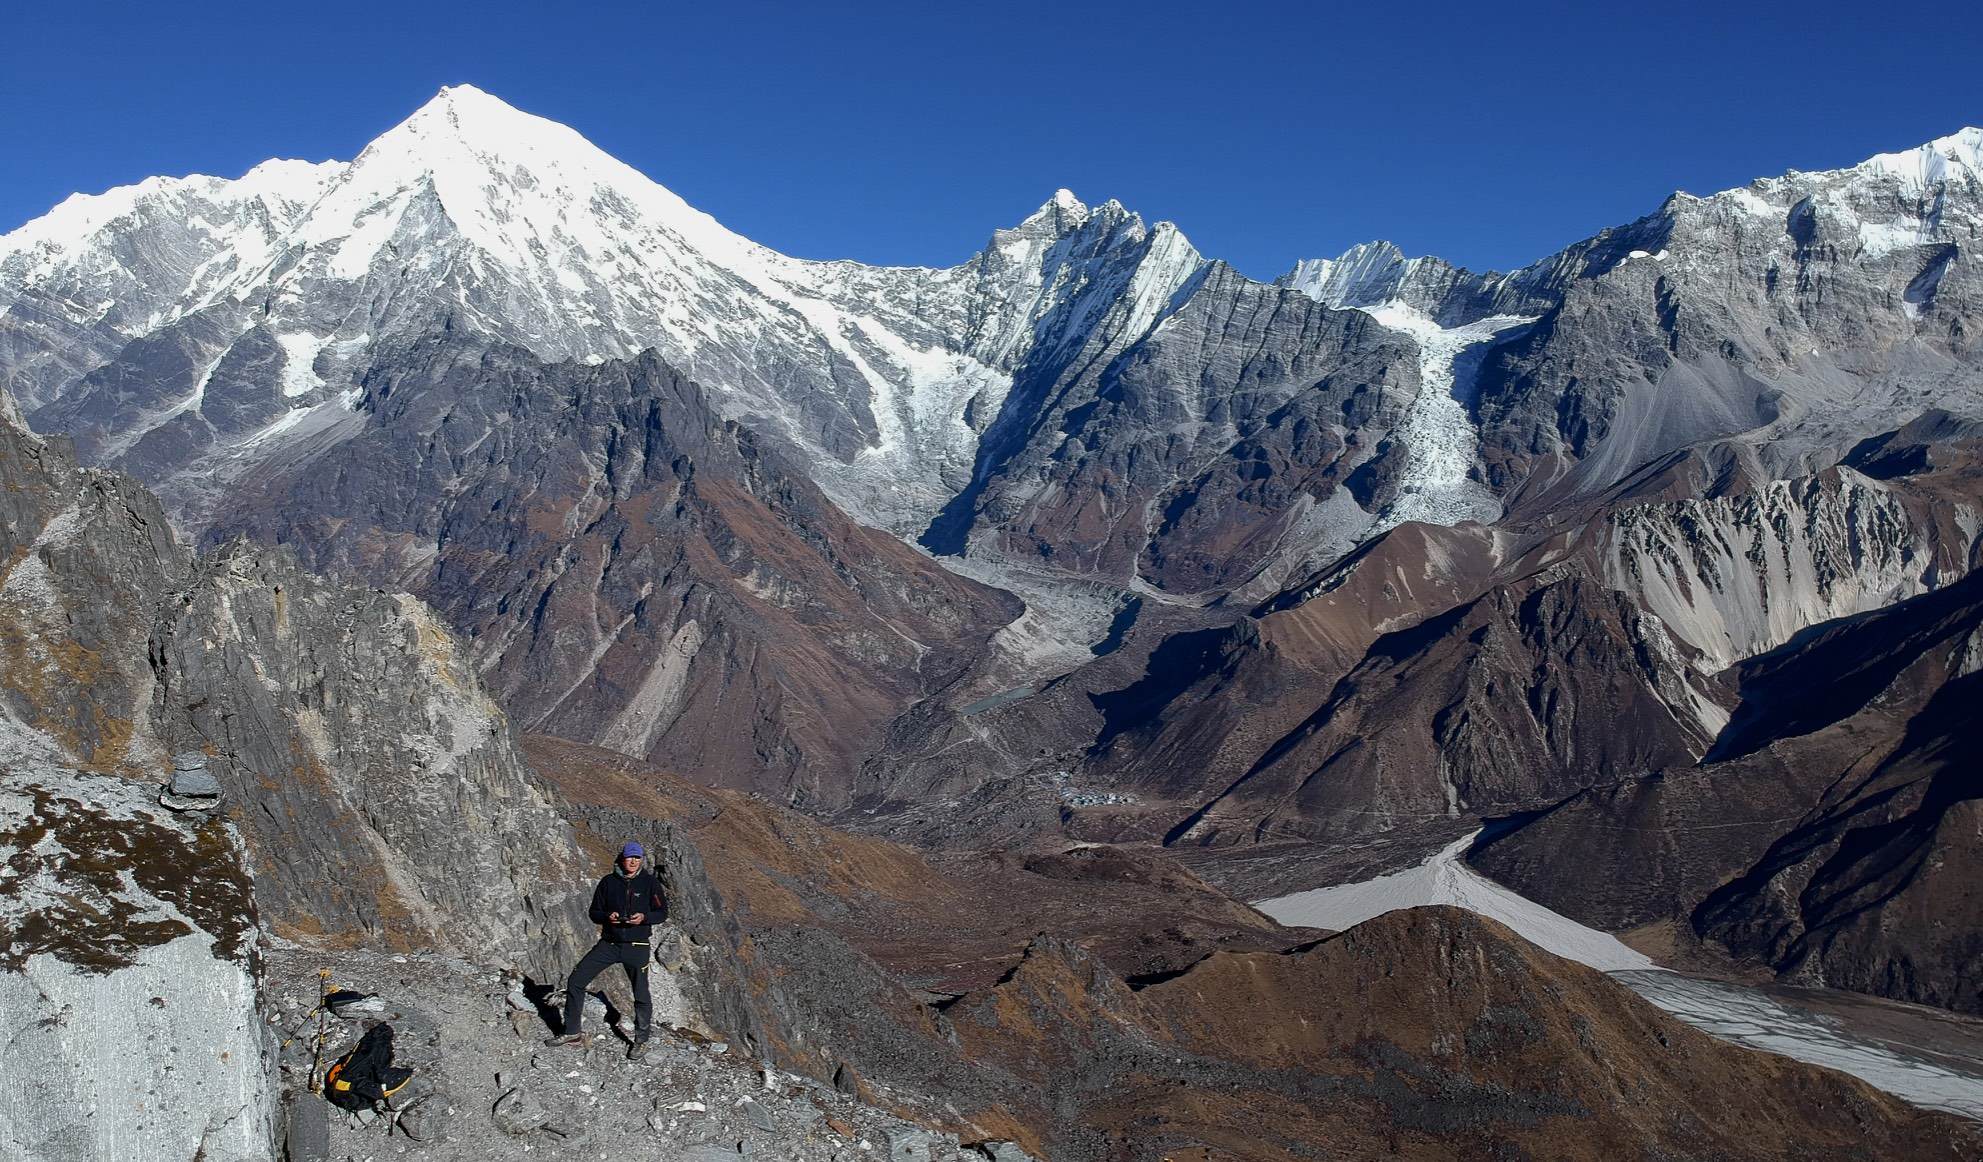 Langtang Lirung and the LL Glacier